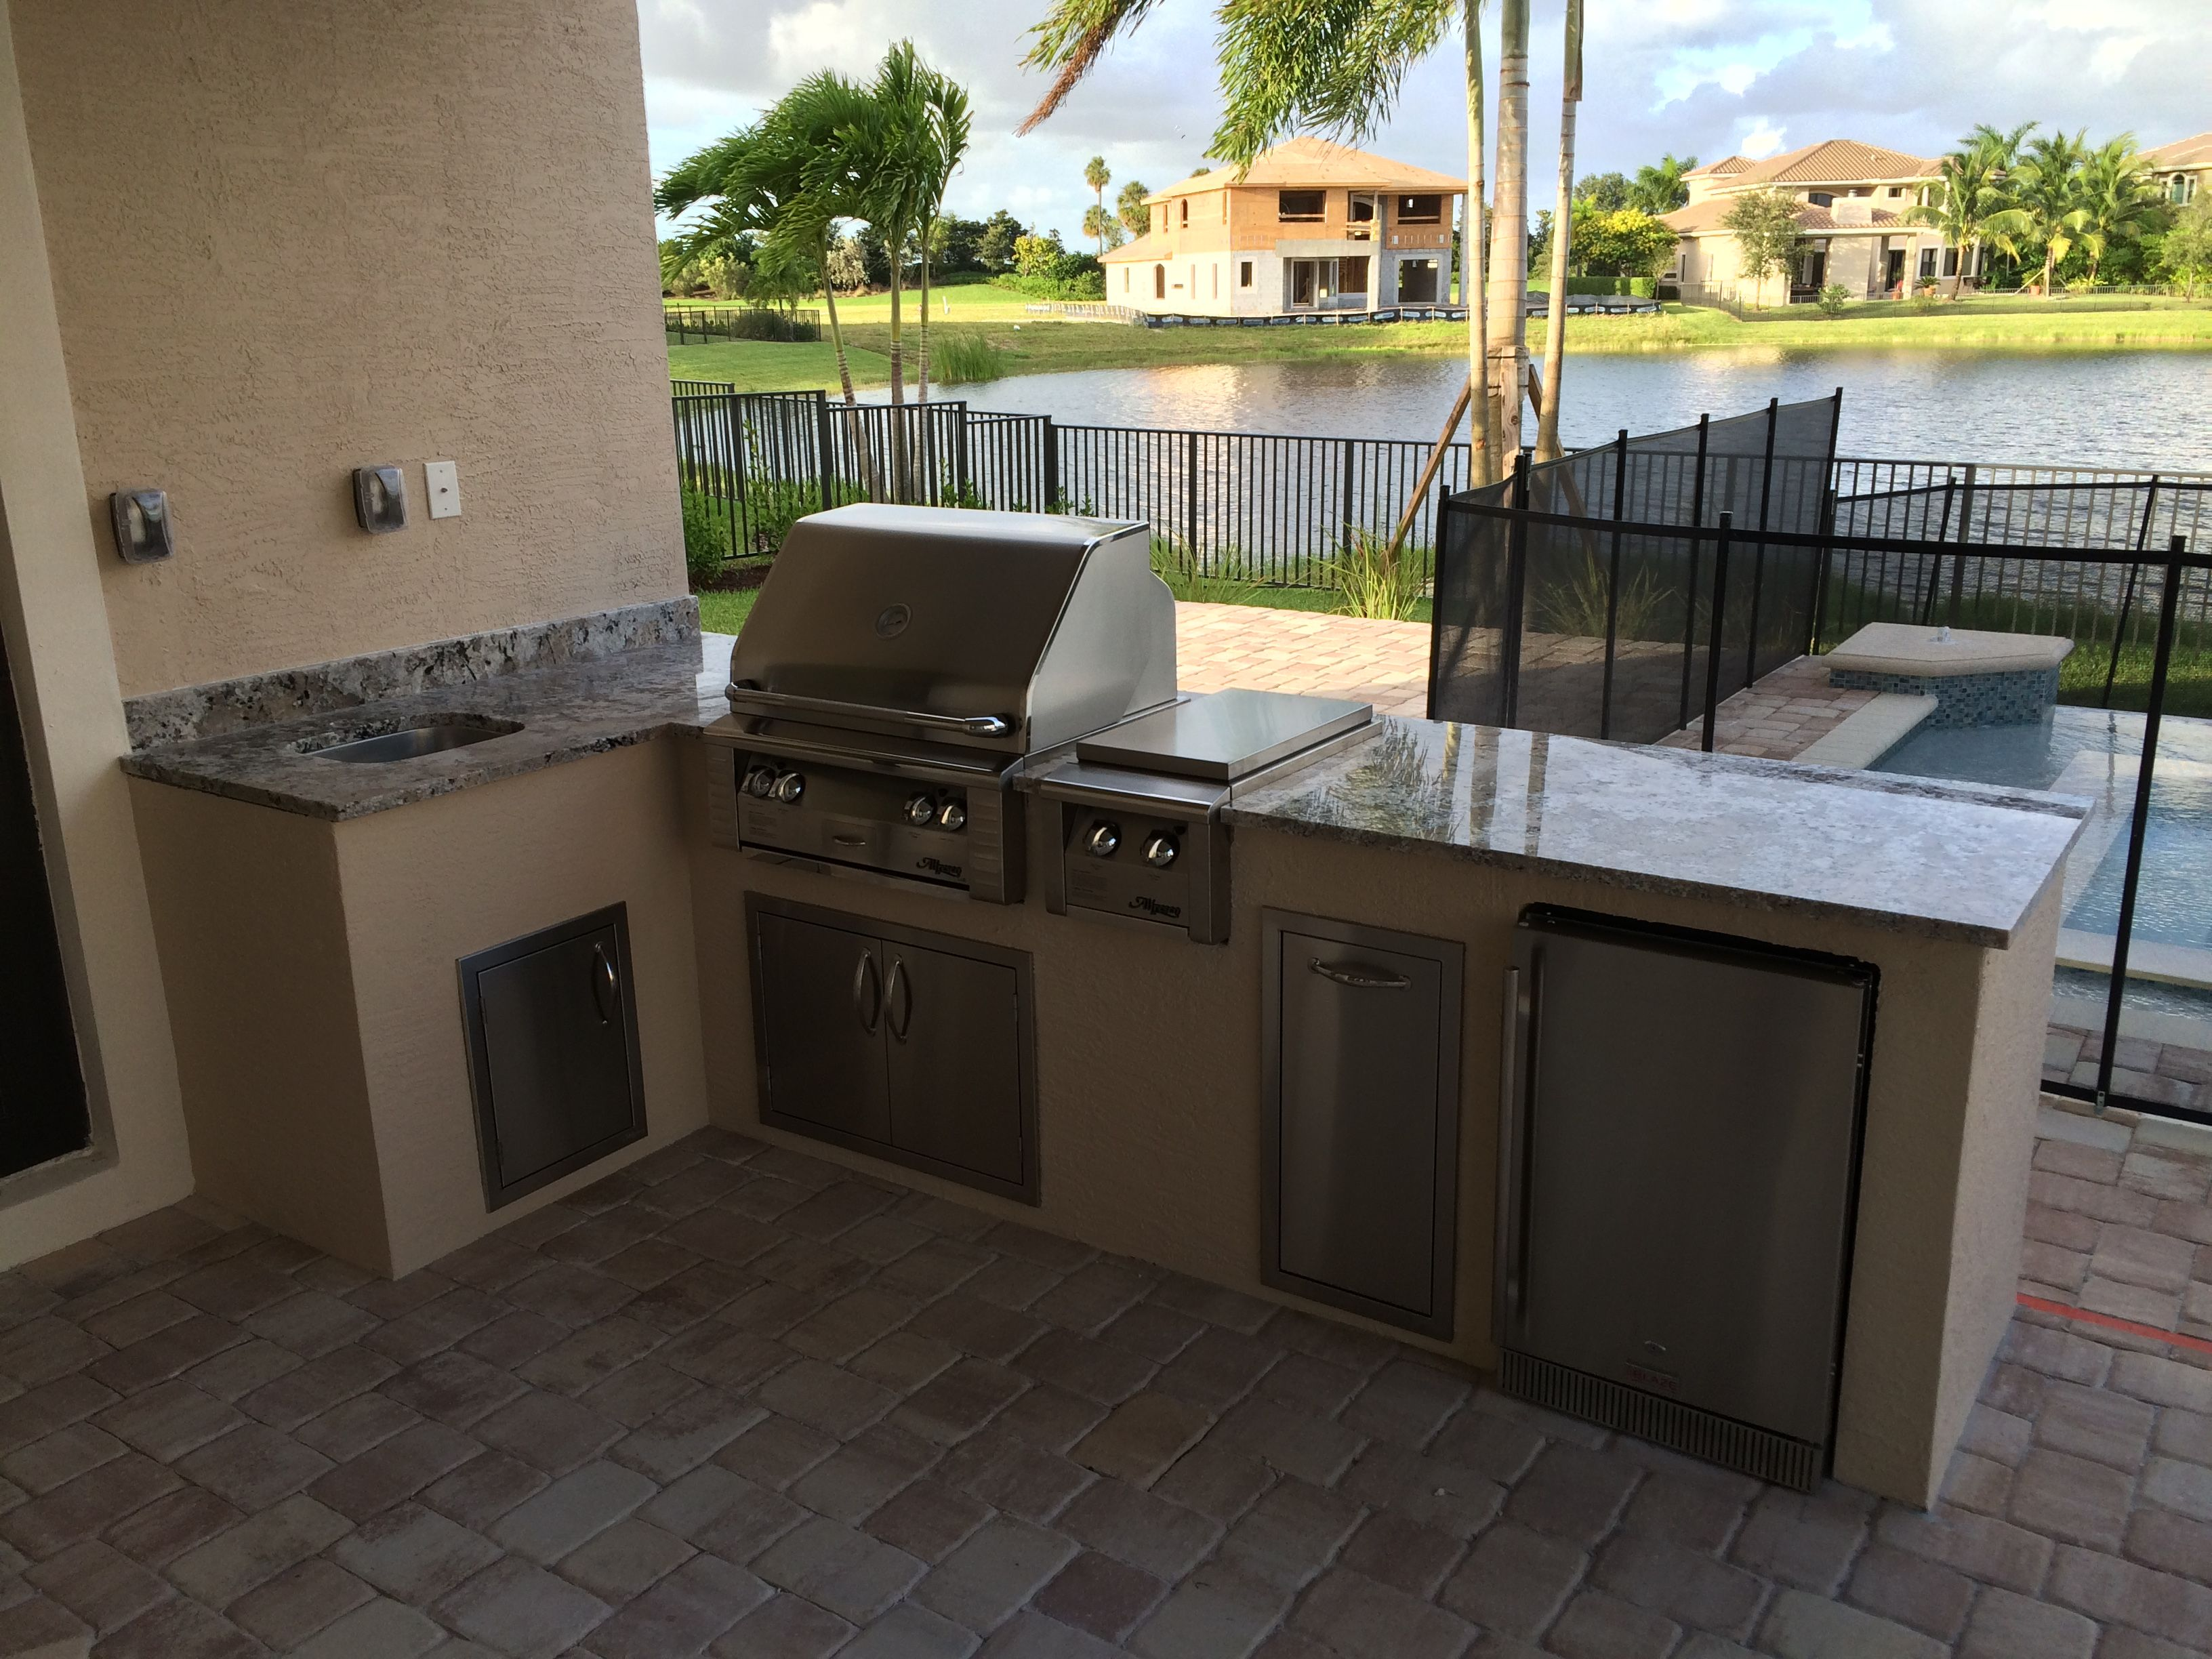 L Shaped Outdoor Kitchen With Alfresco 30 Grill And Double Side Burner Trash Drawer And Refrigerator Built In Grill Outdoor Kitchen Diy Grill